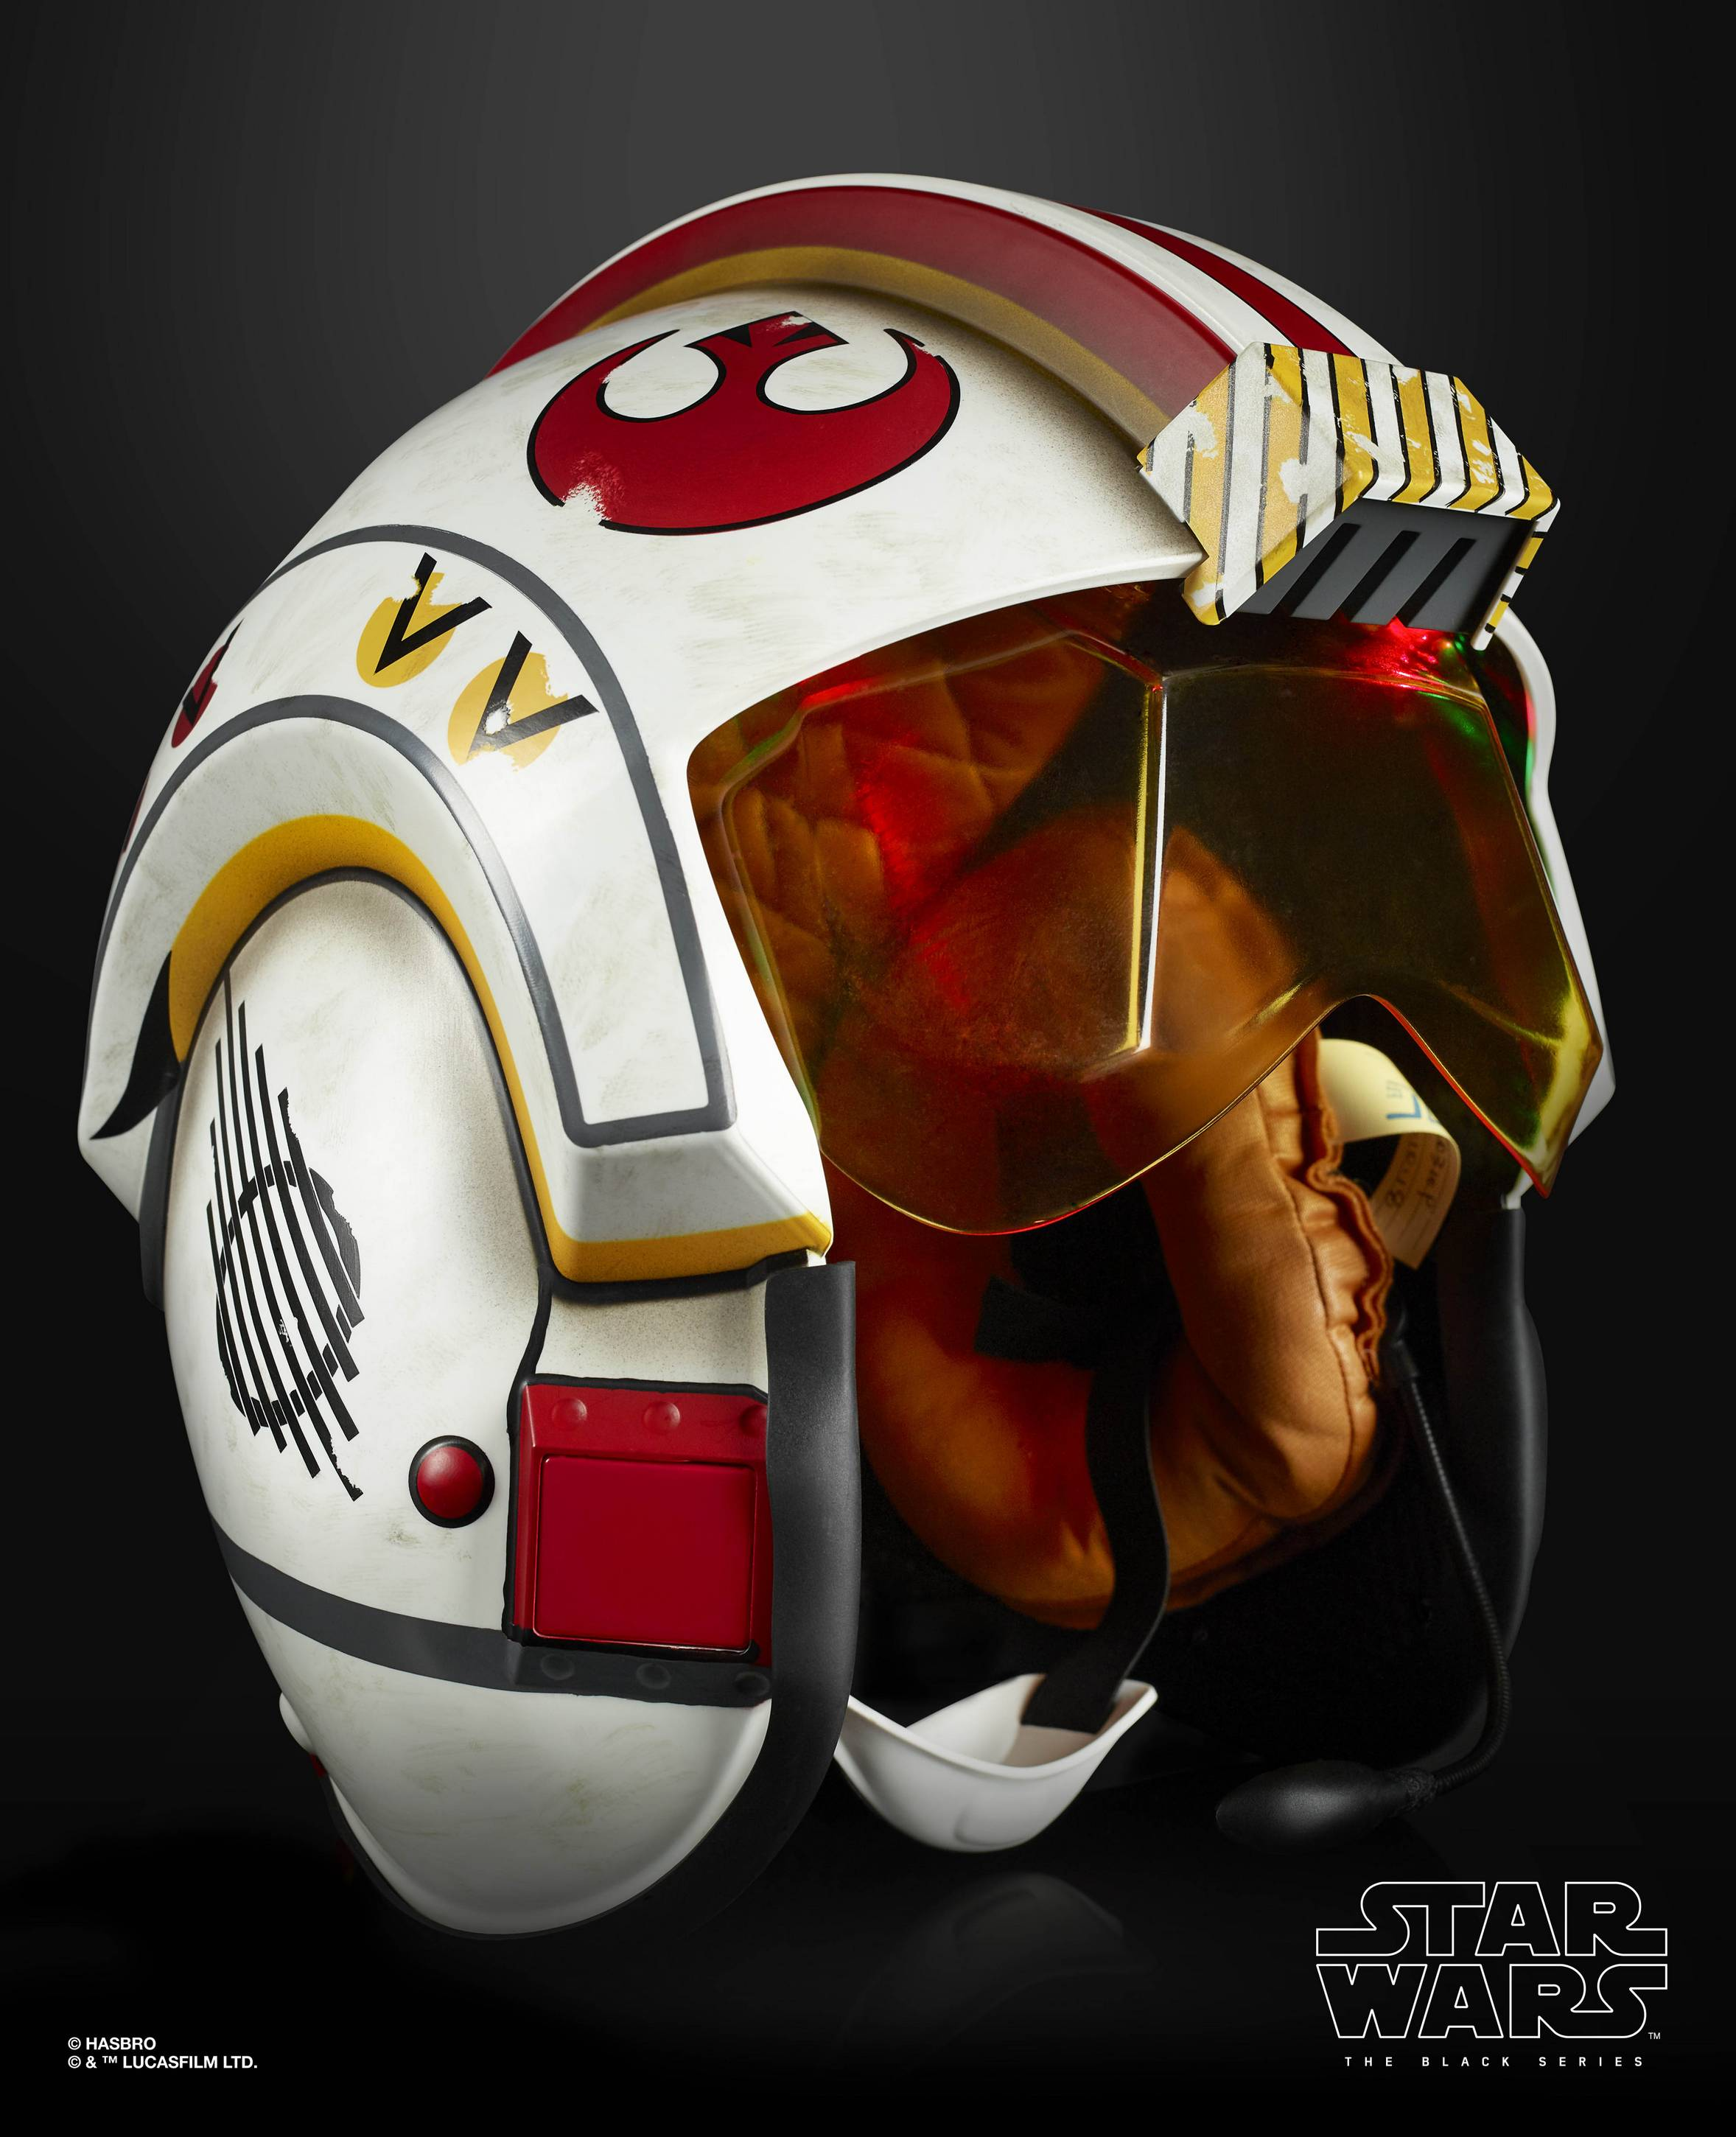 STAR-WARS-THE-BLACK-SERIES-LUKE-SKYWALKER-BATTLE-SIMULATION-ELECTRONIC-HELMET-oop-11.jpg